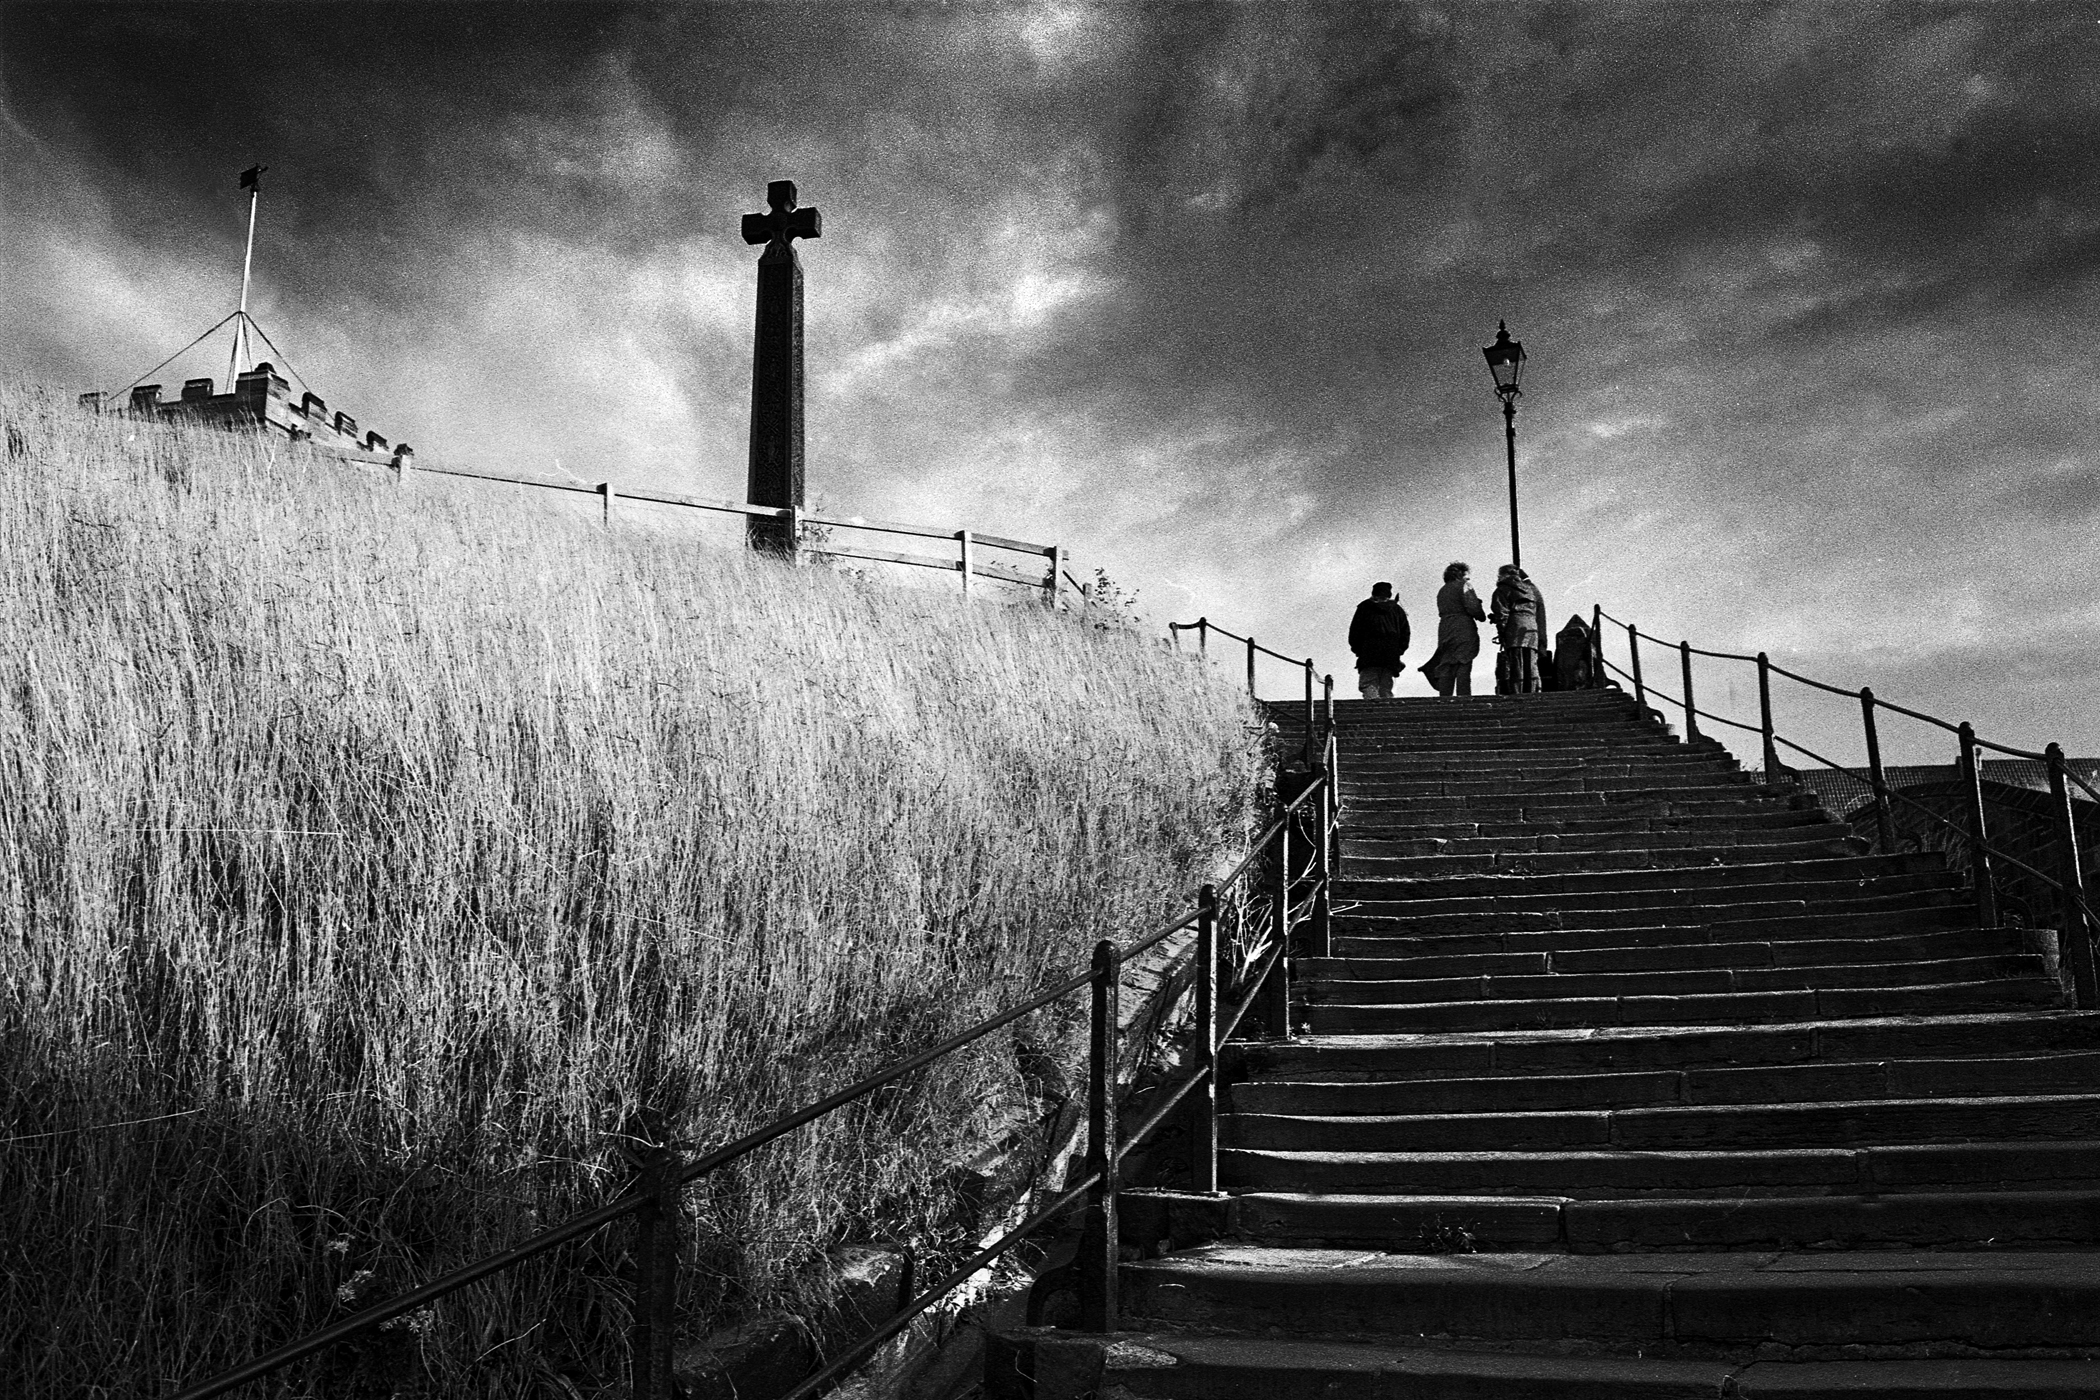 Whitby's famous steps were once put up for sale - as an April Fools Day prank